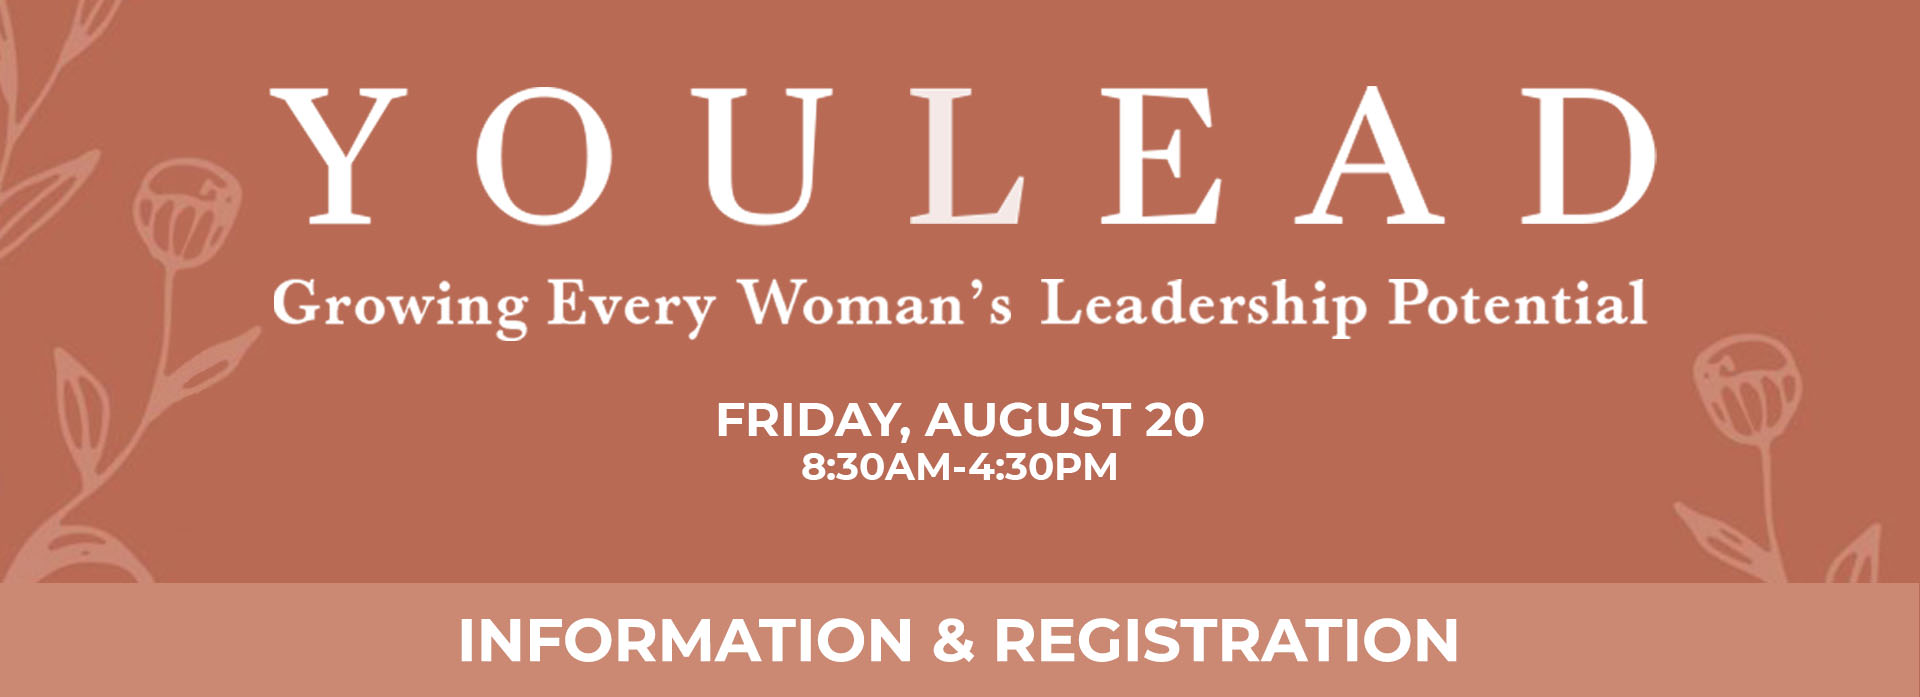 You Lead Women's Conference